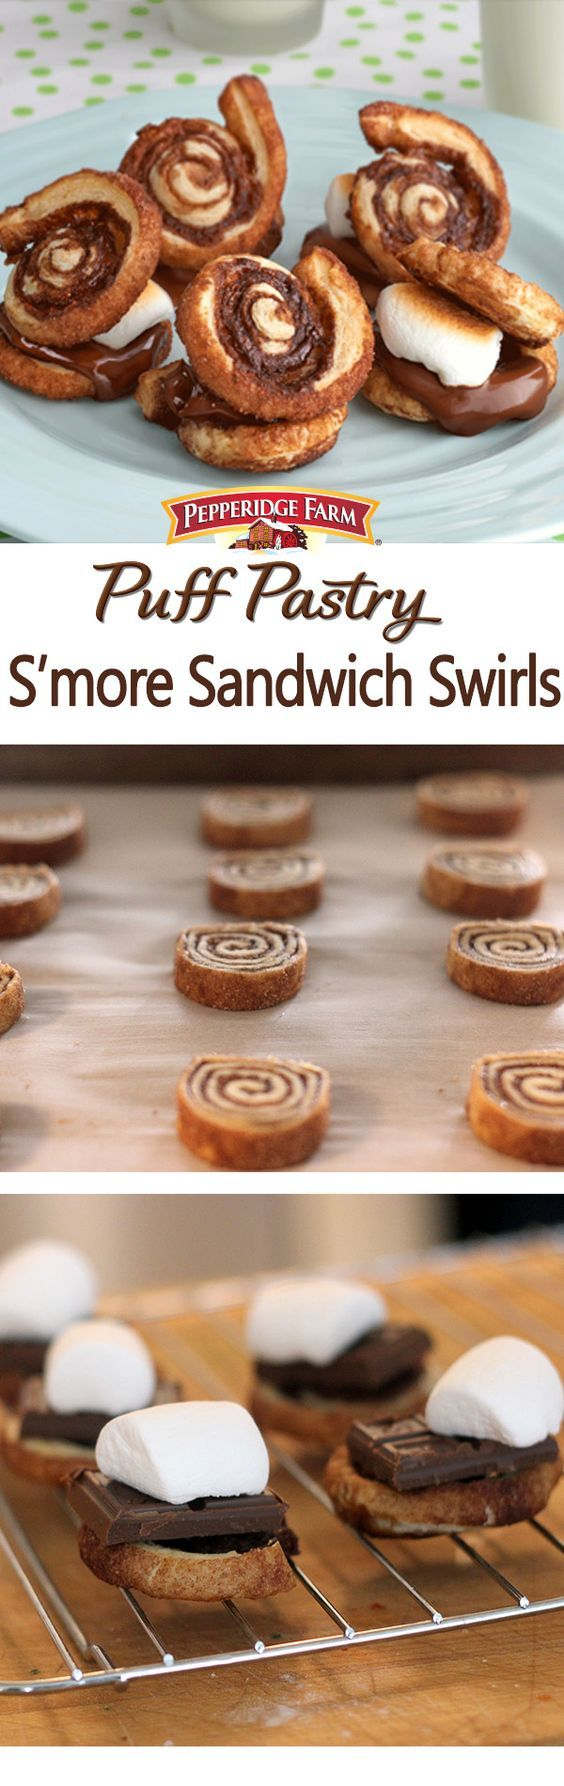 Puff Pastry S'more Sandwich Swirls Recipe.  Check out this unique twist on a classic favorite. Warm, sweetened Puff Pastry slices, marshmallows and chocolate combine to create a dessert that is unbelievably scrumptious. There is no better way to celebrate S'mores Day or to just enjoy a warm summer evening.